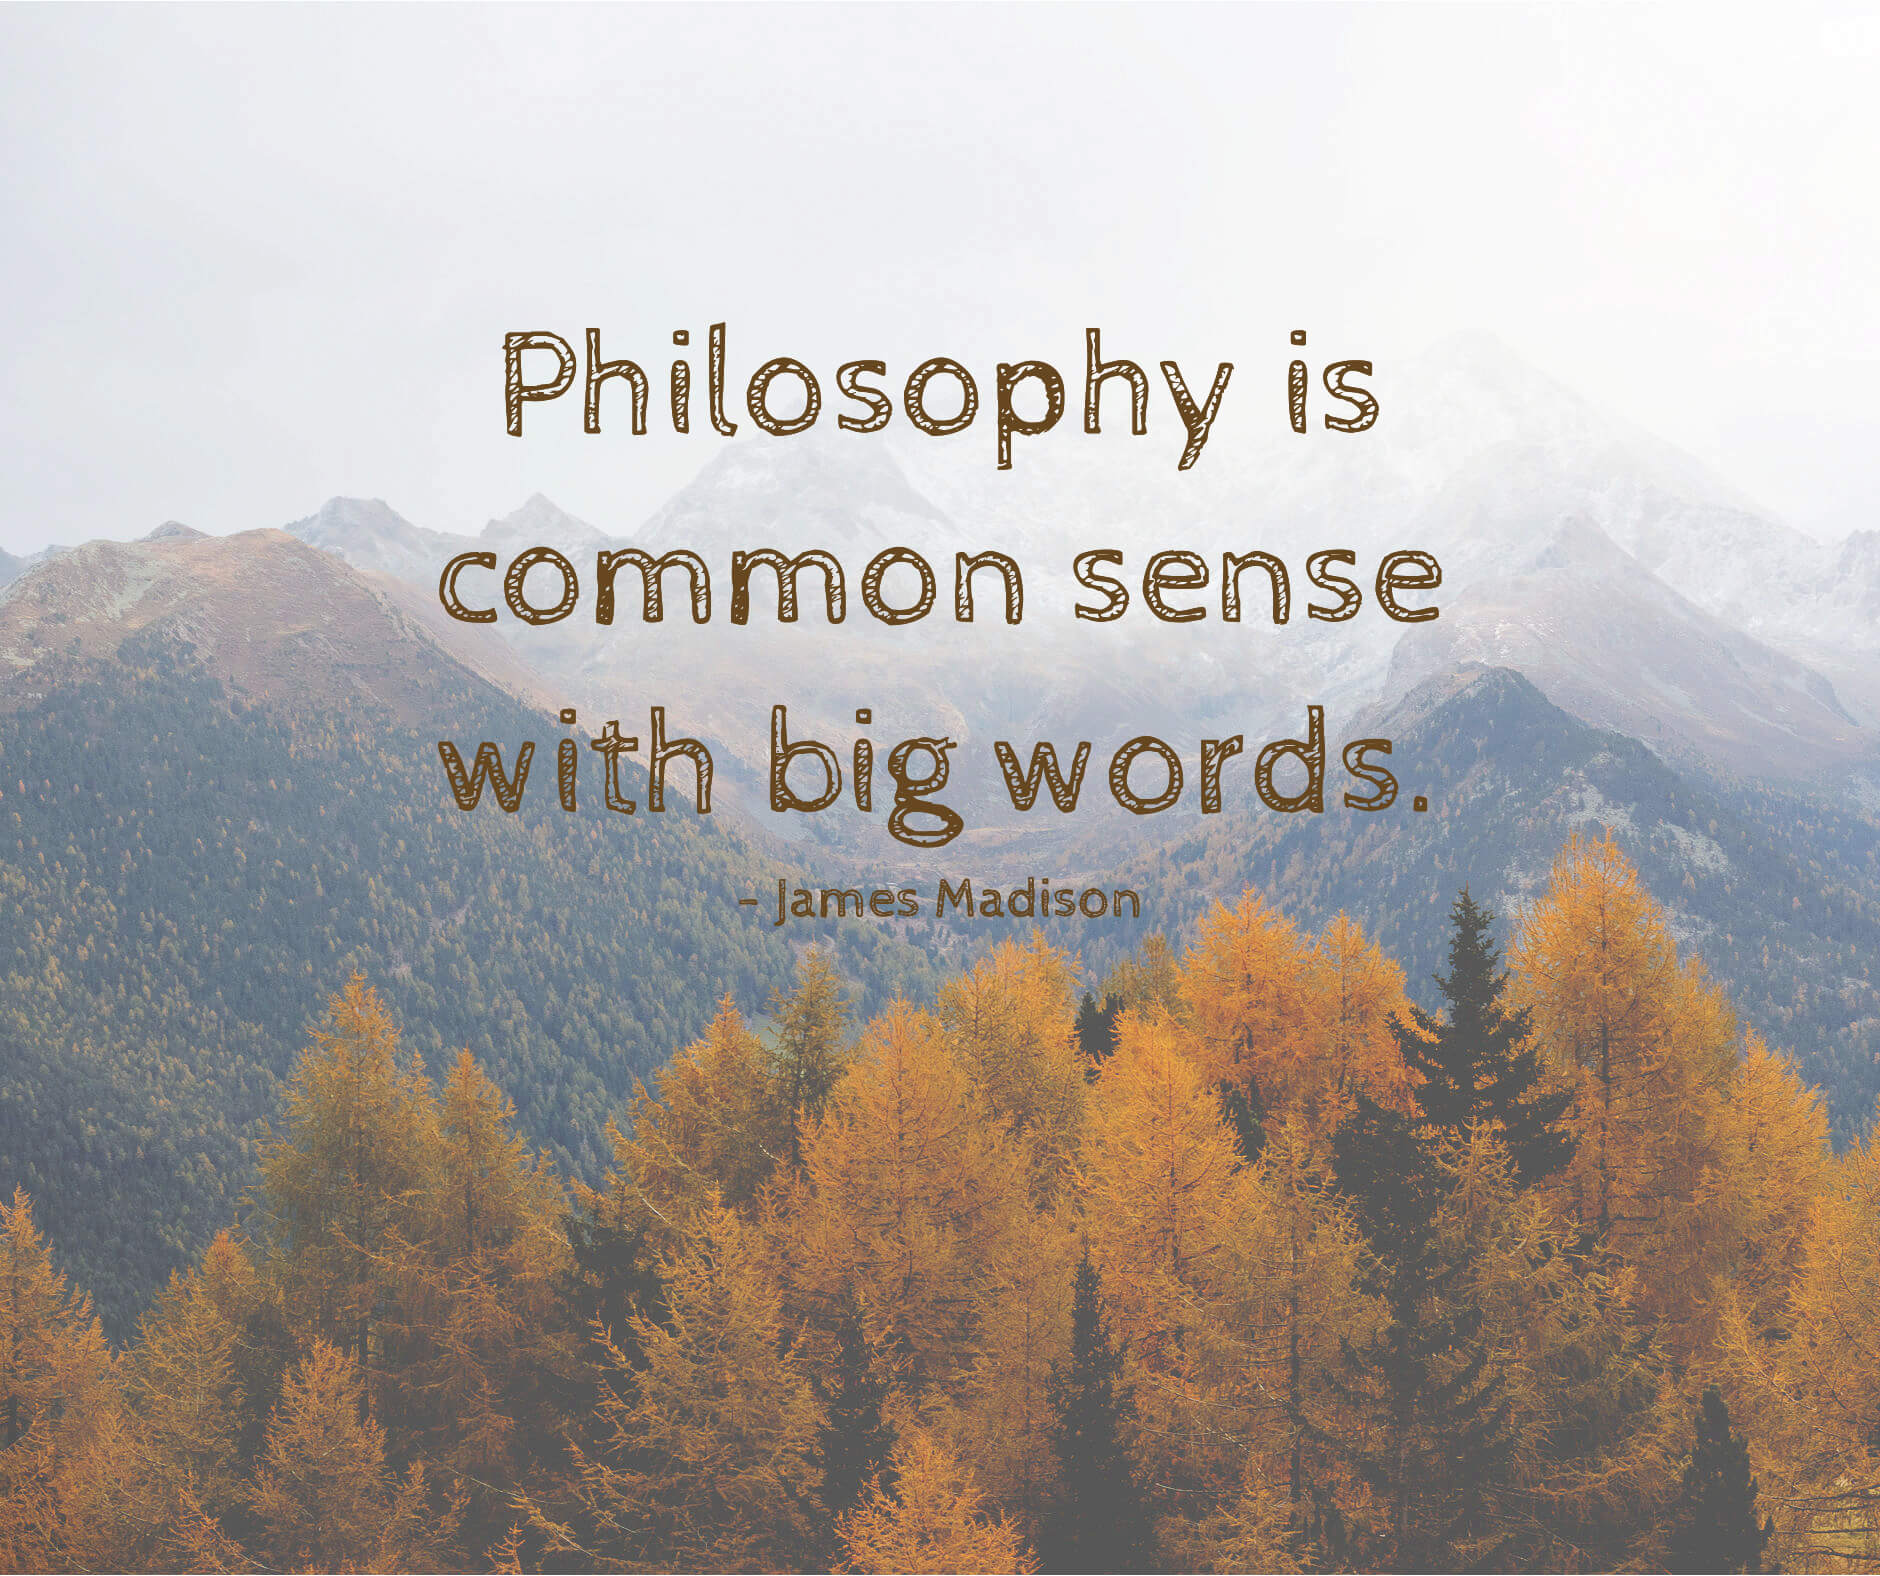 Philosophy is common sense with big words.